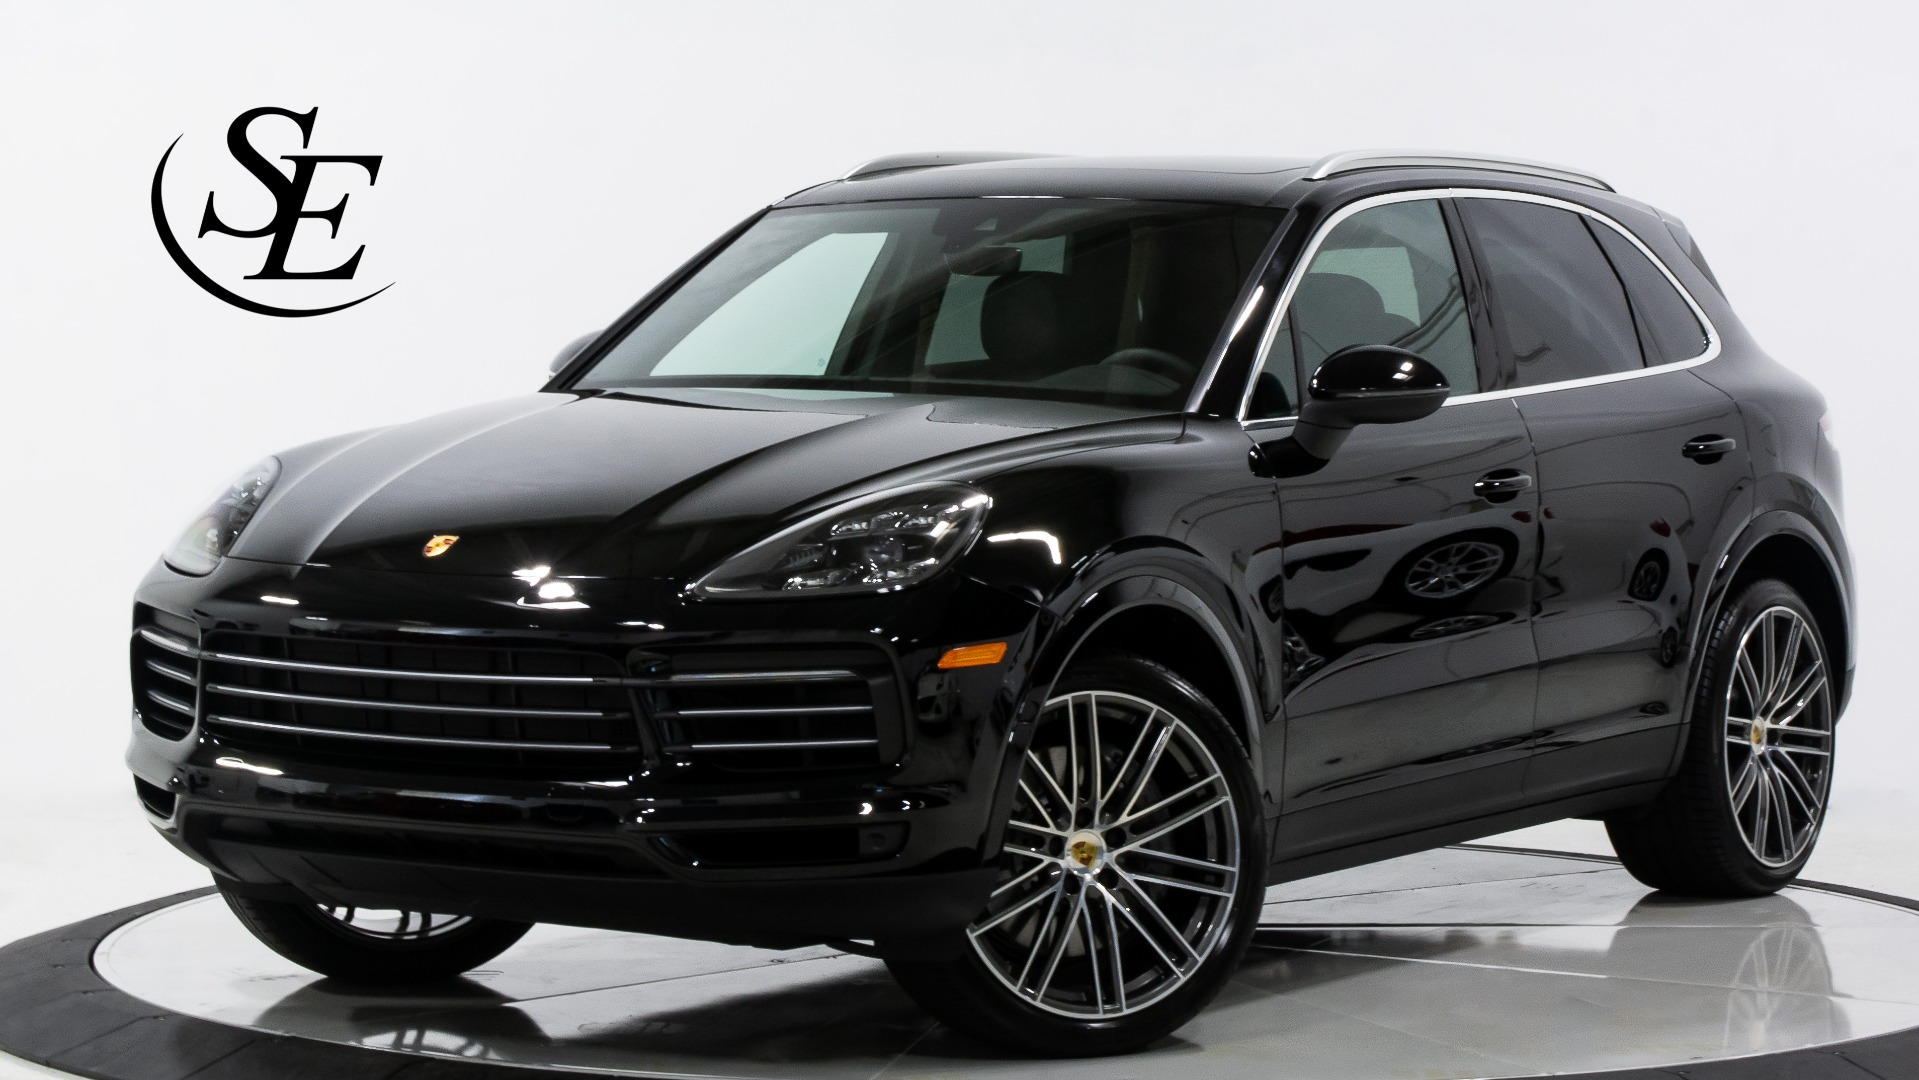 2019 Porsche Cayenne S Sold Stock 22891 For Sale Near Pompano Beach Fl Fl Porsche Dealer